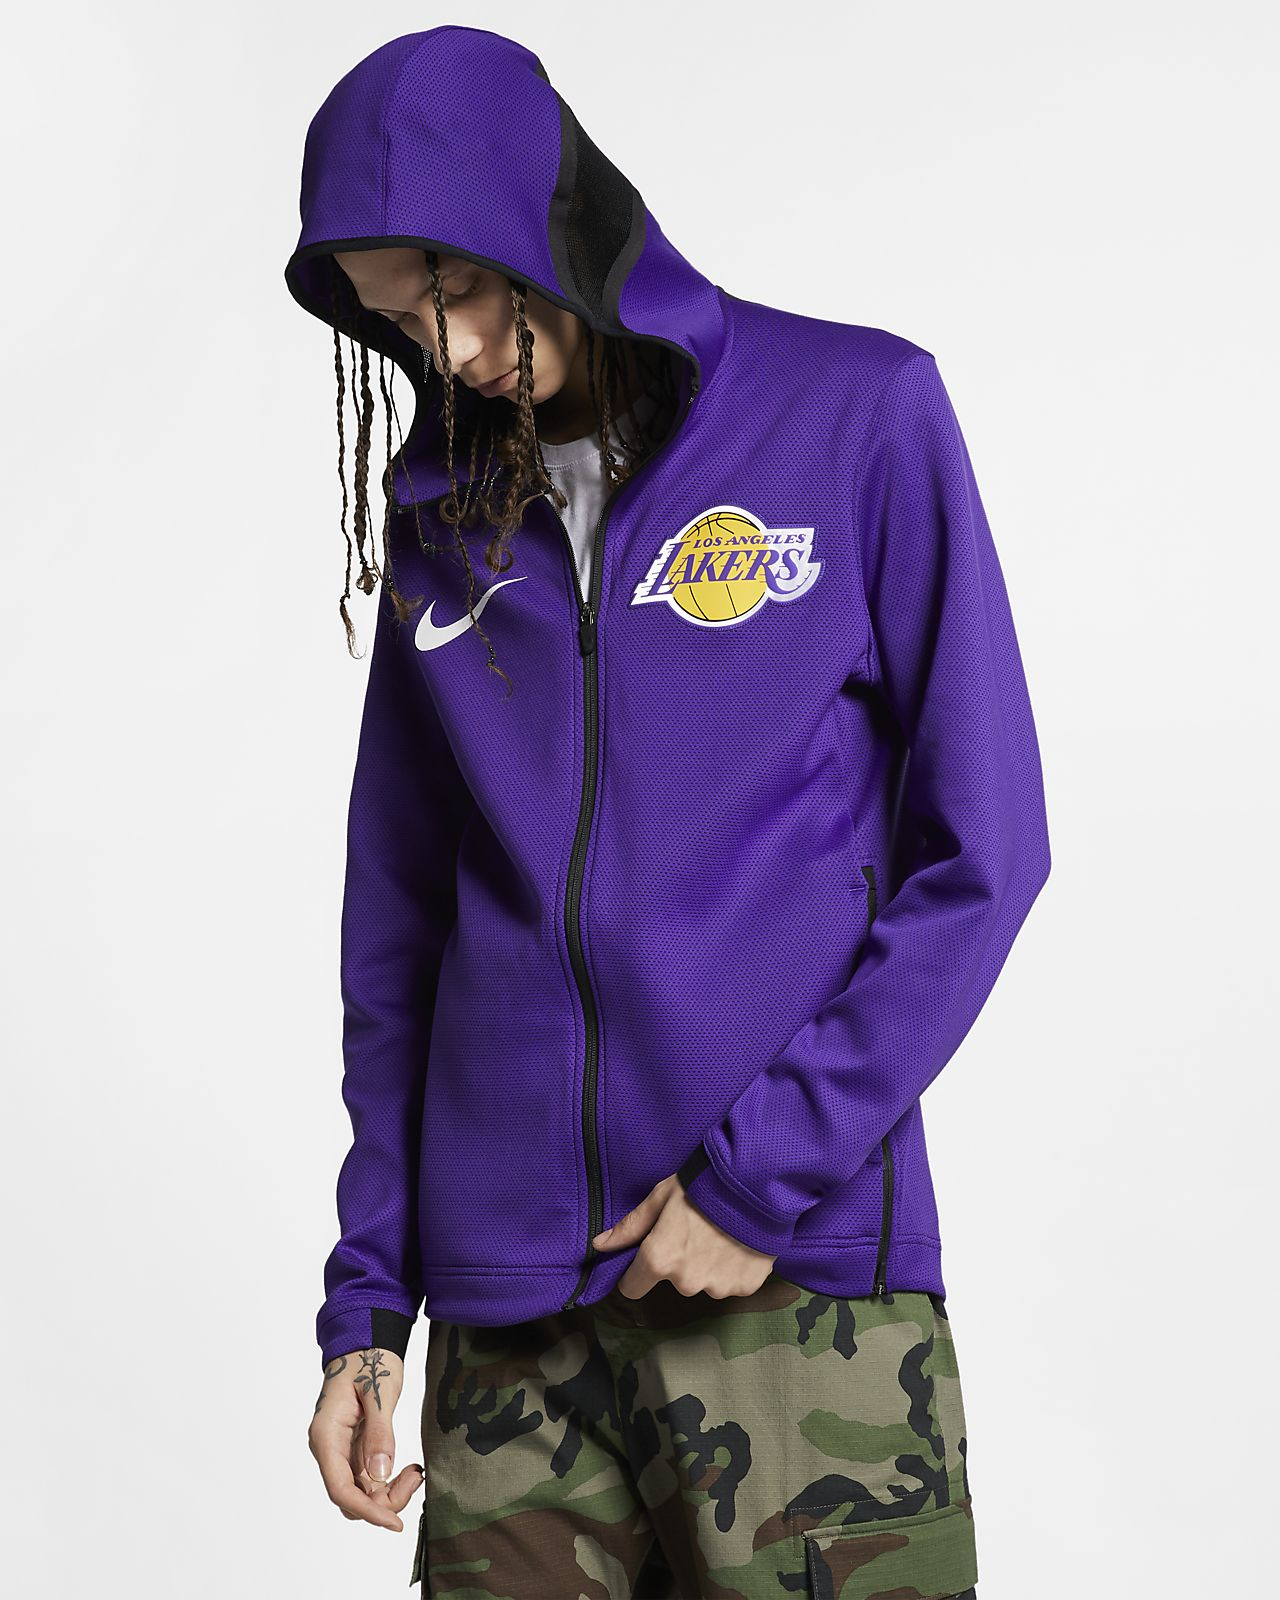 ccc5ce7c6 Los Angeles Lakers Nike Therma Flex Showtime Men s NBA Hoodie. Nike ...